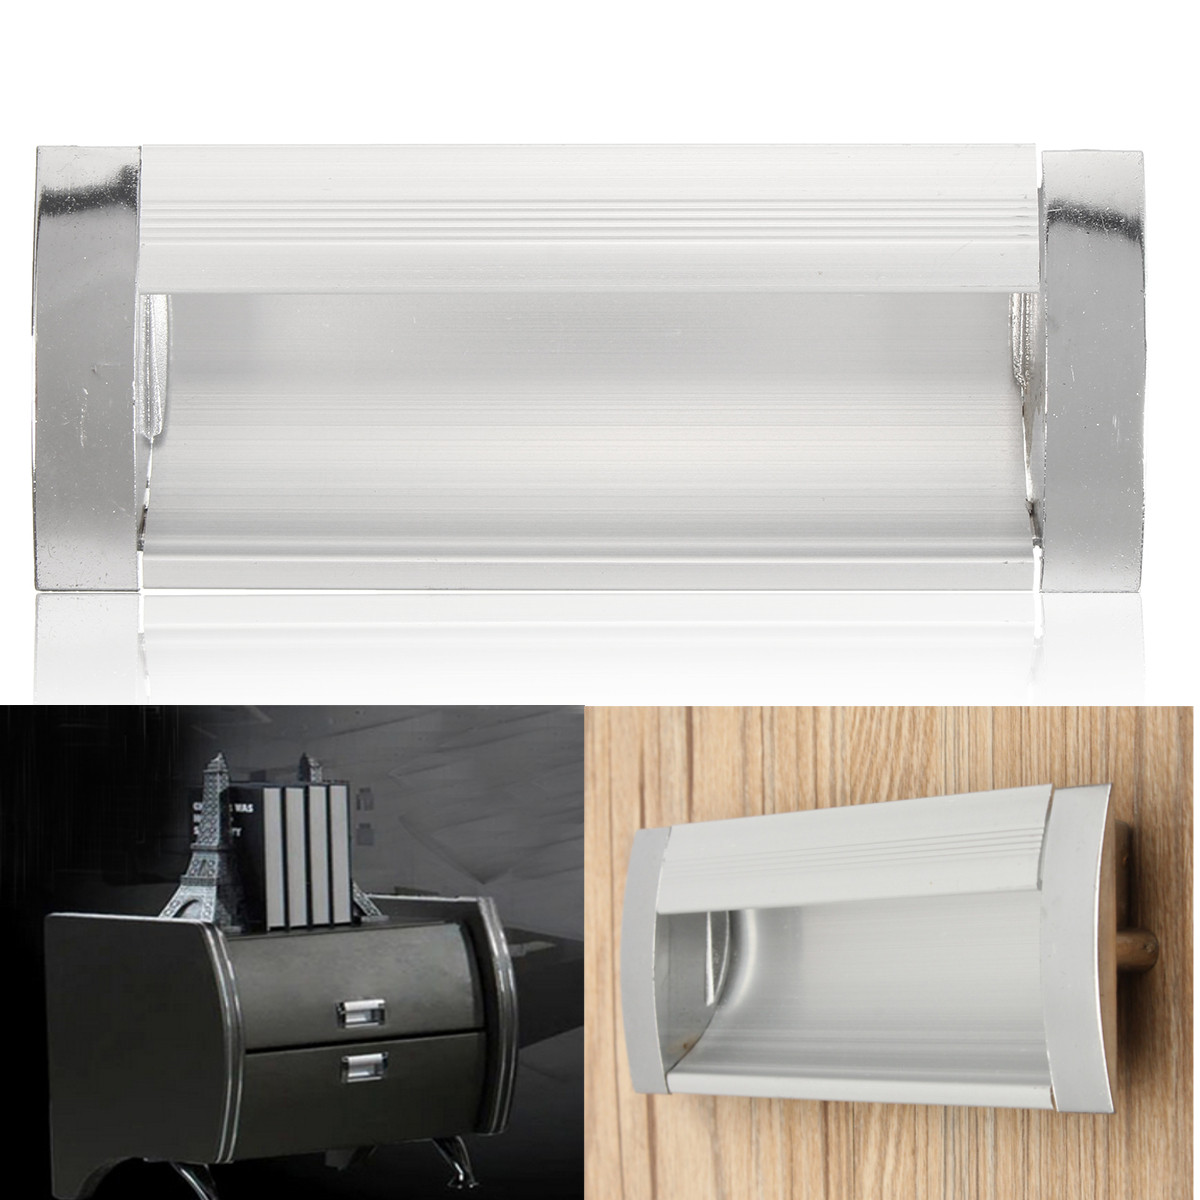 Aluminium Alloy Cupboard Drawer Pull Handle Rectangular Cabinet Handle